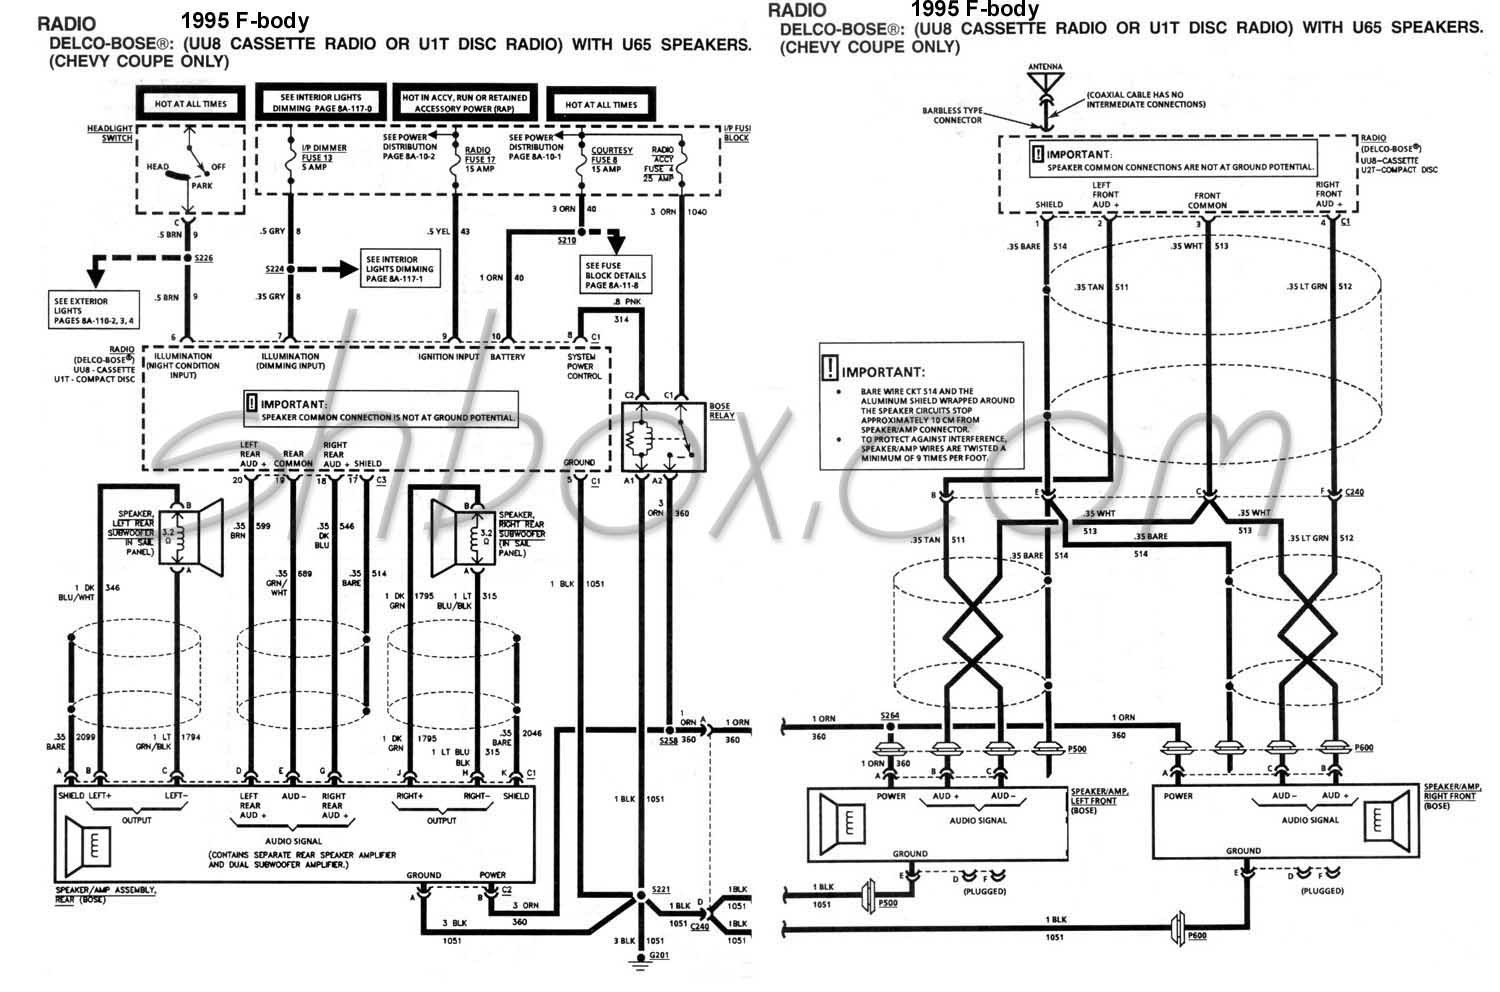 hight resolution of 1994 factory bose stereo system confusion camaroz28 com message board rh camaroz28 com gm bose wiring corvette wiring diagram